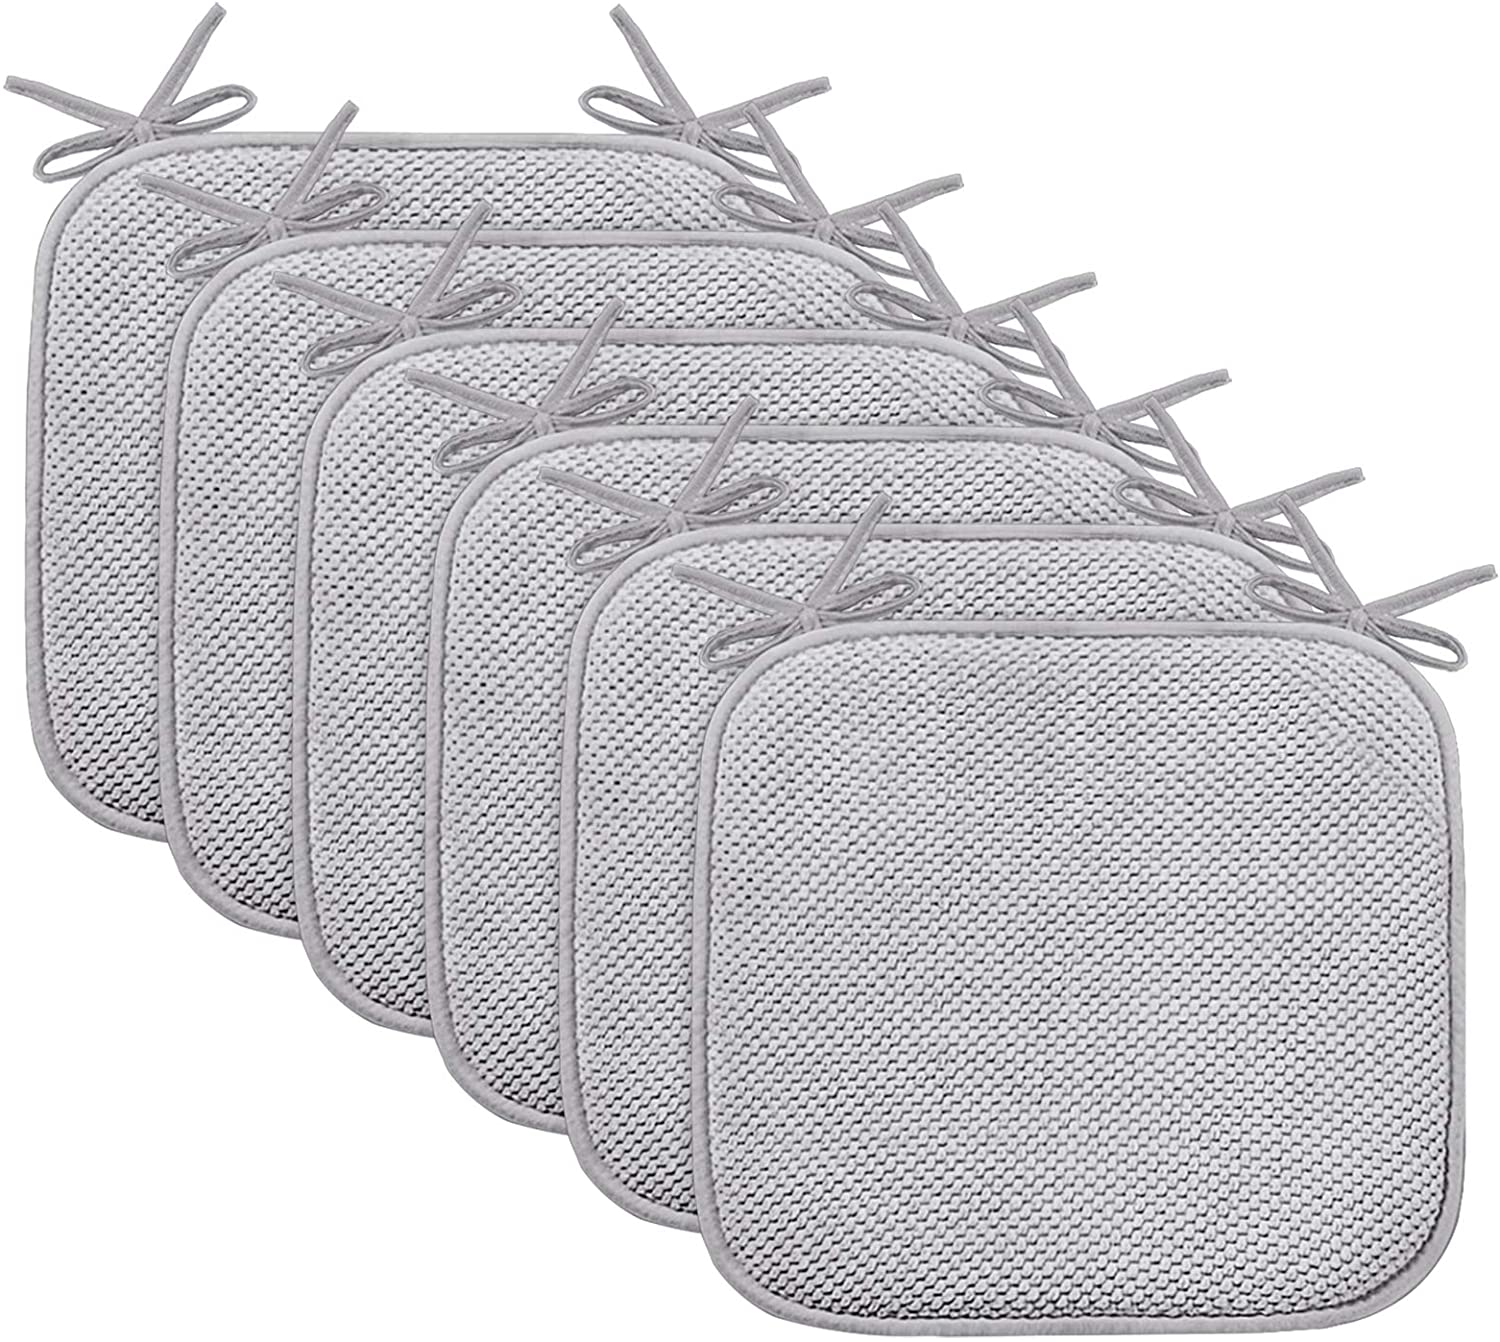 """Chair Cushion Pads with Ties Non Slip Honeycomb Memory Foam Seat Chair Cushion Pads Premium Comfort Memory Foam Chair Pads/Cushions Square 16"""" x 16"""" Seat Cover, 6 Pack, Gray"""